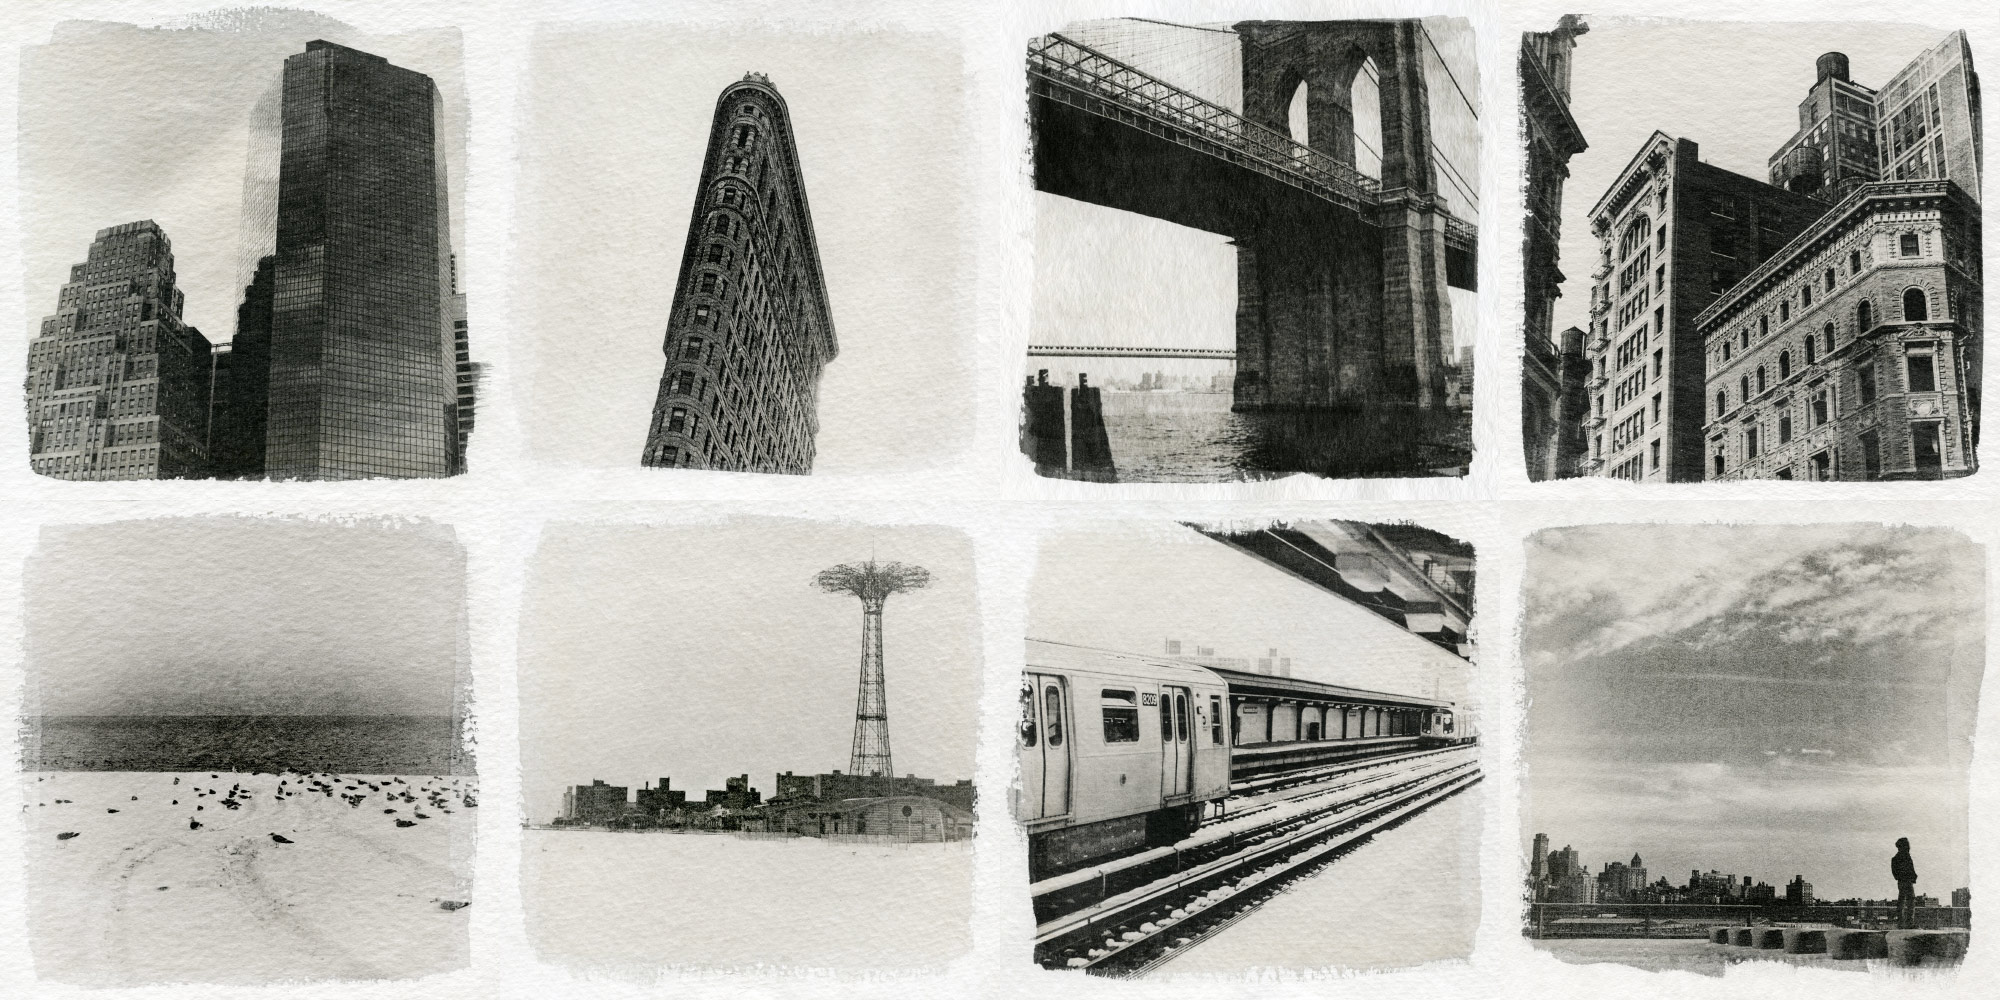 Liquid emulsion prints - The City of New York (c) Sasha Krasnov